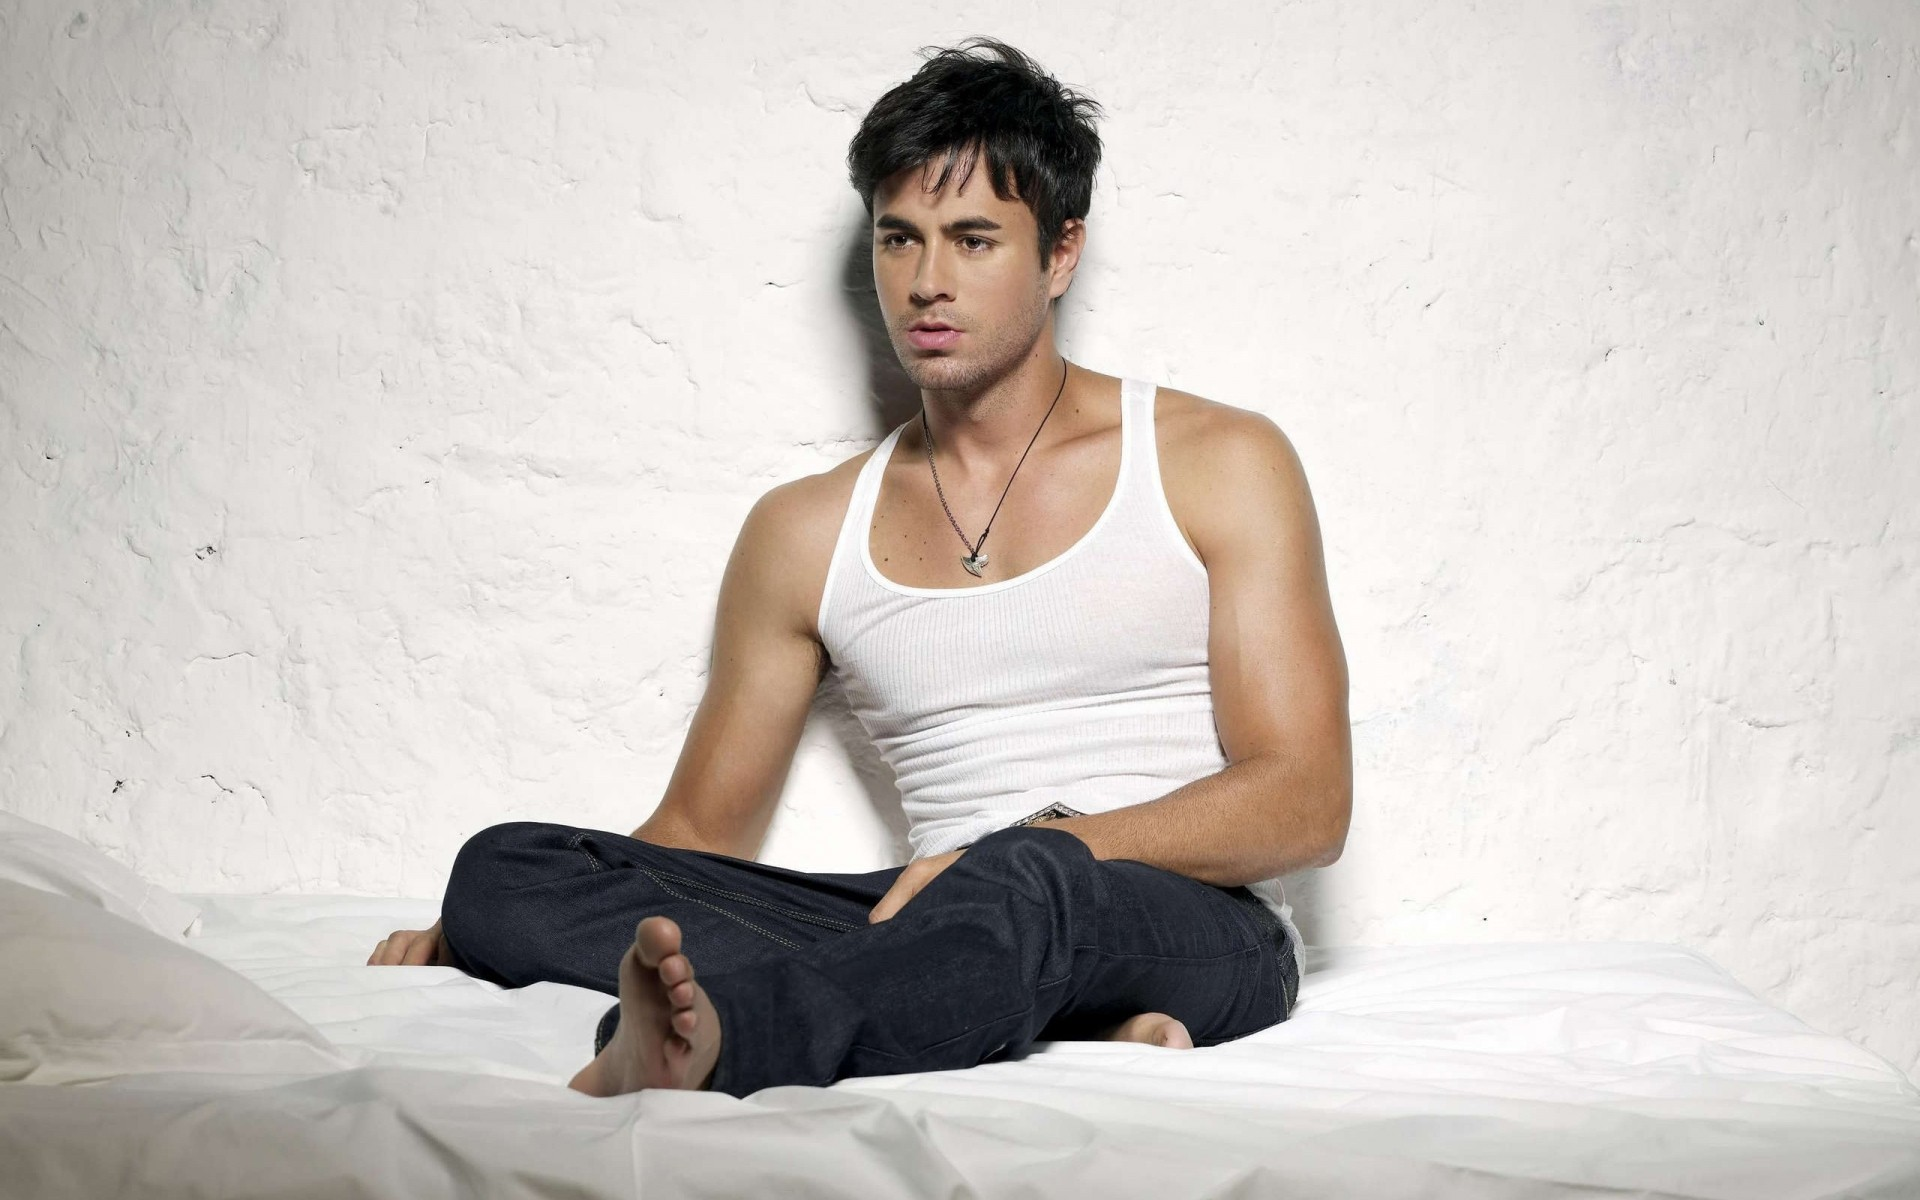 enrique iglesias hot. iphone wallpapers for free.